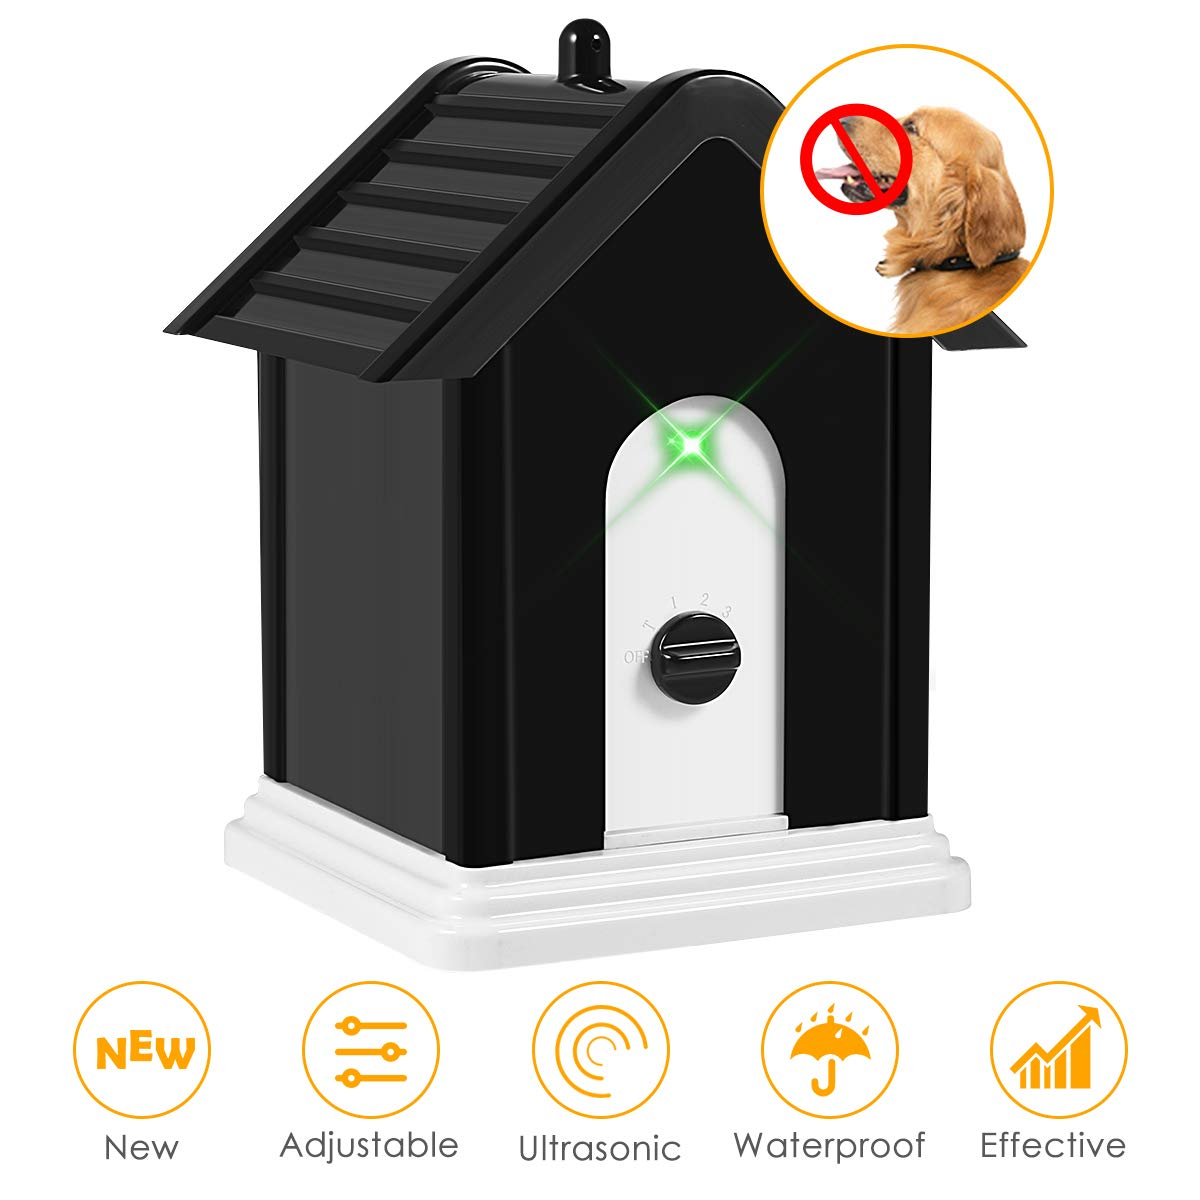 ELenest Anti Barking Device, 2019 New Bark Box Outdoor Dog Repellent Device with Adjustable Ultrasonic Level Control Safe for Small Medium Large Dogs, Sonic Bark Deterrents, Bark Control Device by ELenest